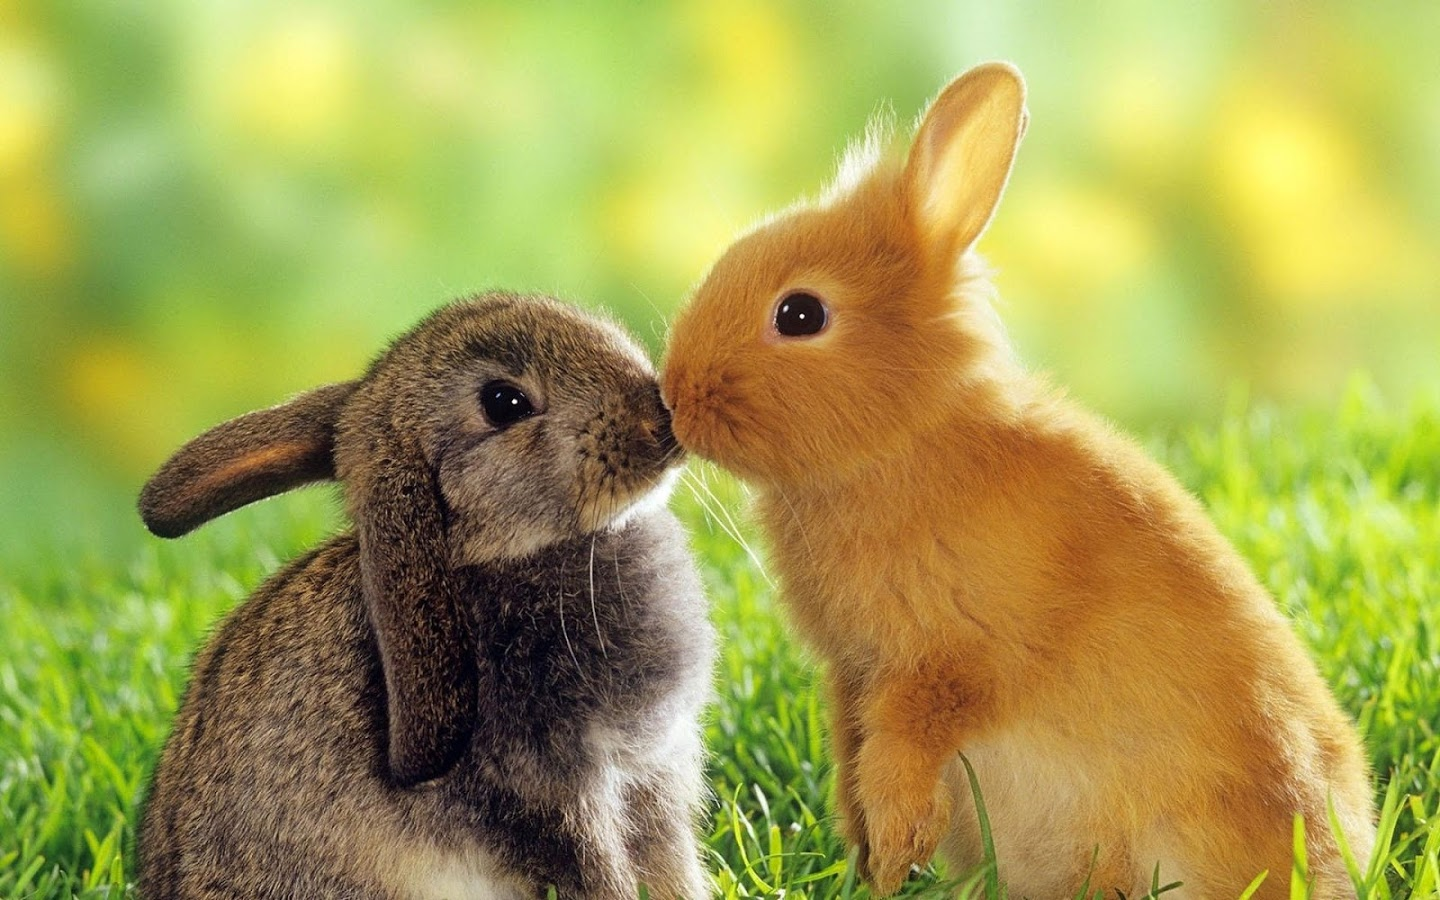 Cute Rabbits Wallpapers For Mobile Lovers Rabbits Hd Free Wallappers Ofr Desktop Hd Wallpaper